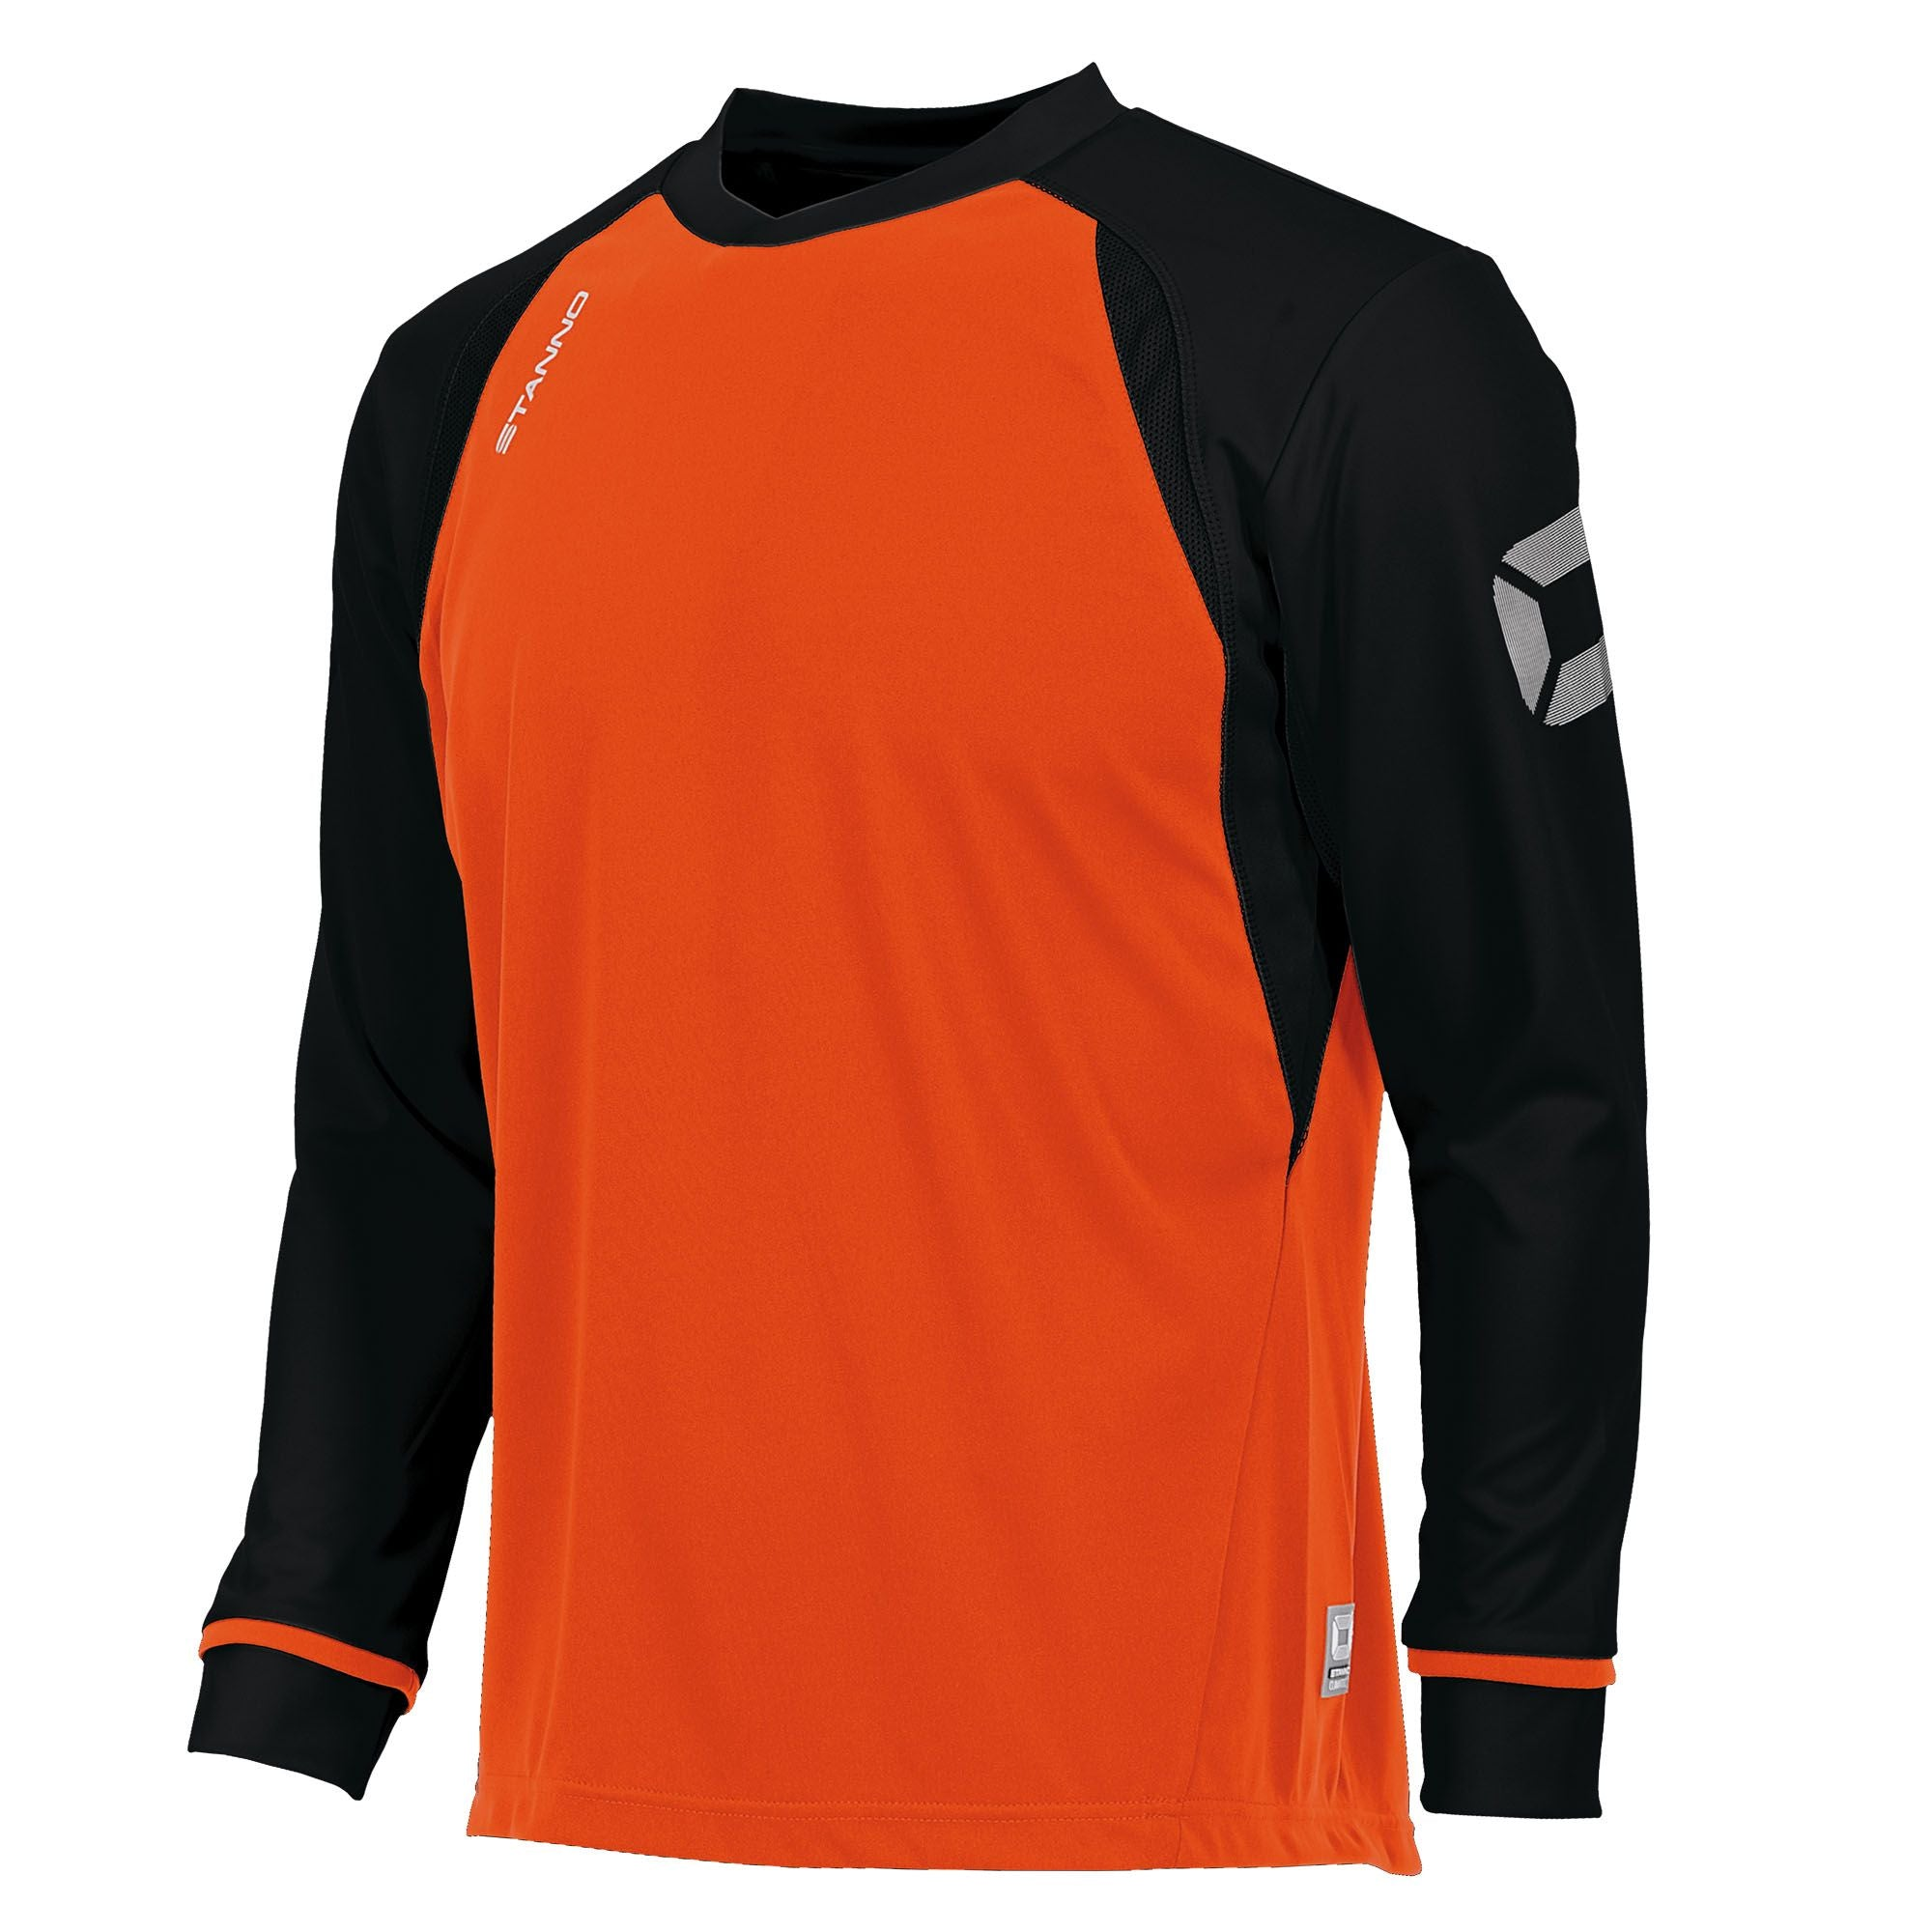 Long sleeved Stanno Liga shirt in orange with contrast black sleeves and collar, Stadium logo on the sleeve.